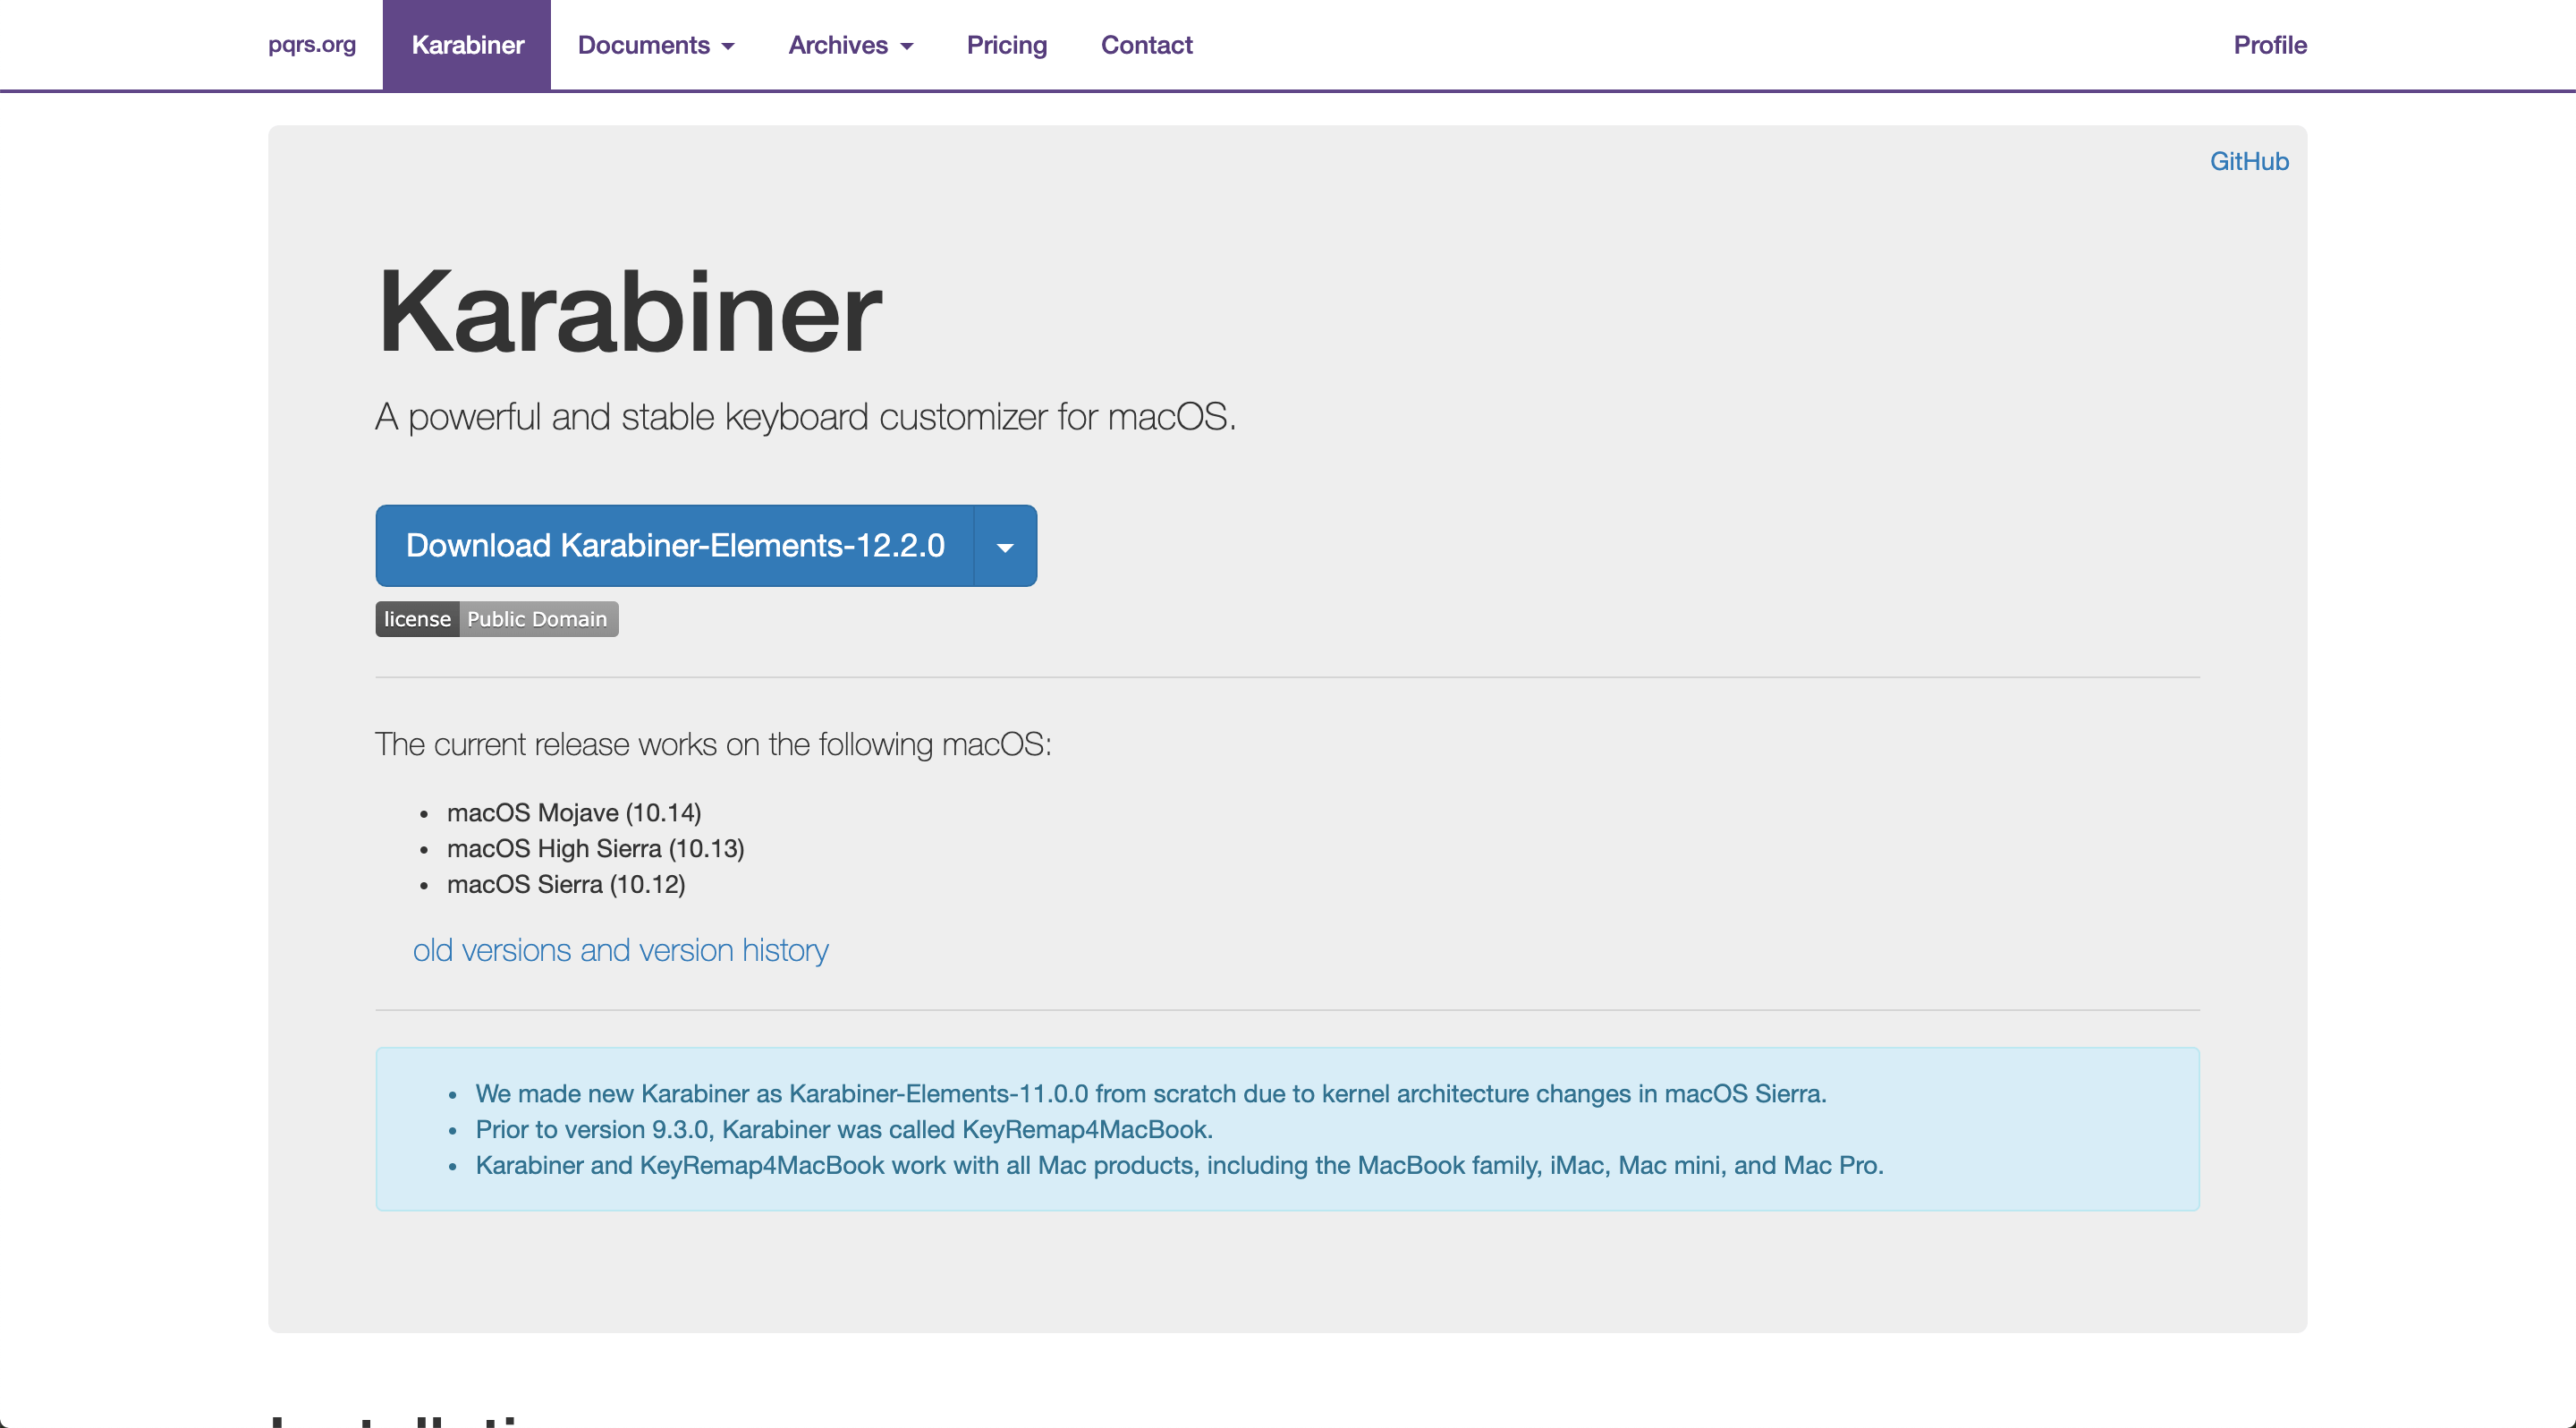 karabiner website screenshot